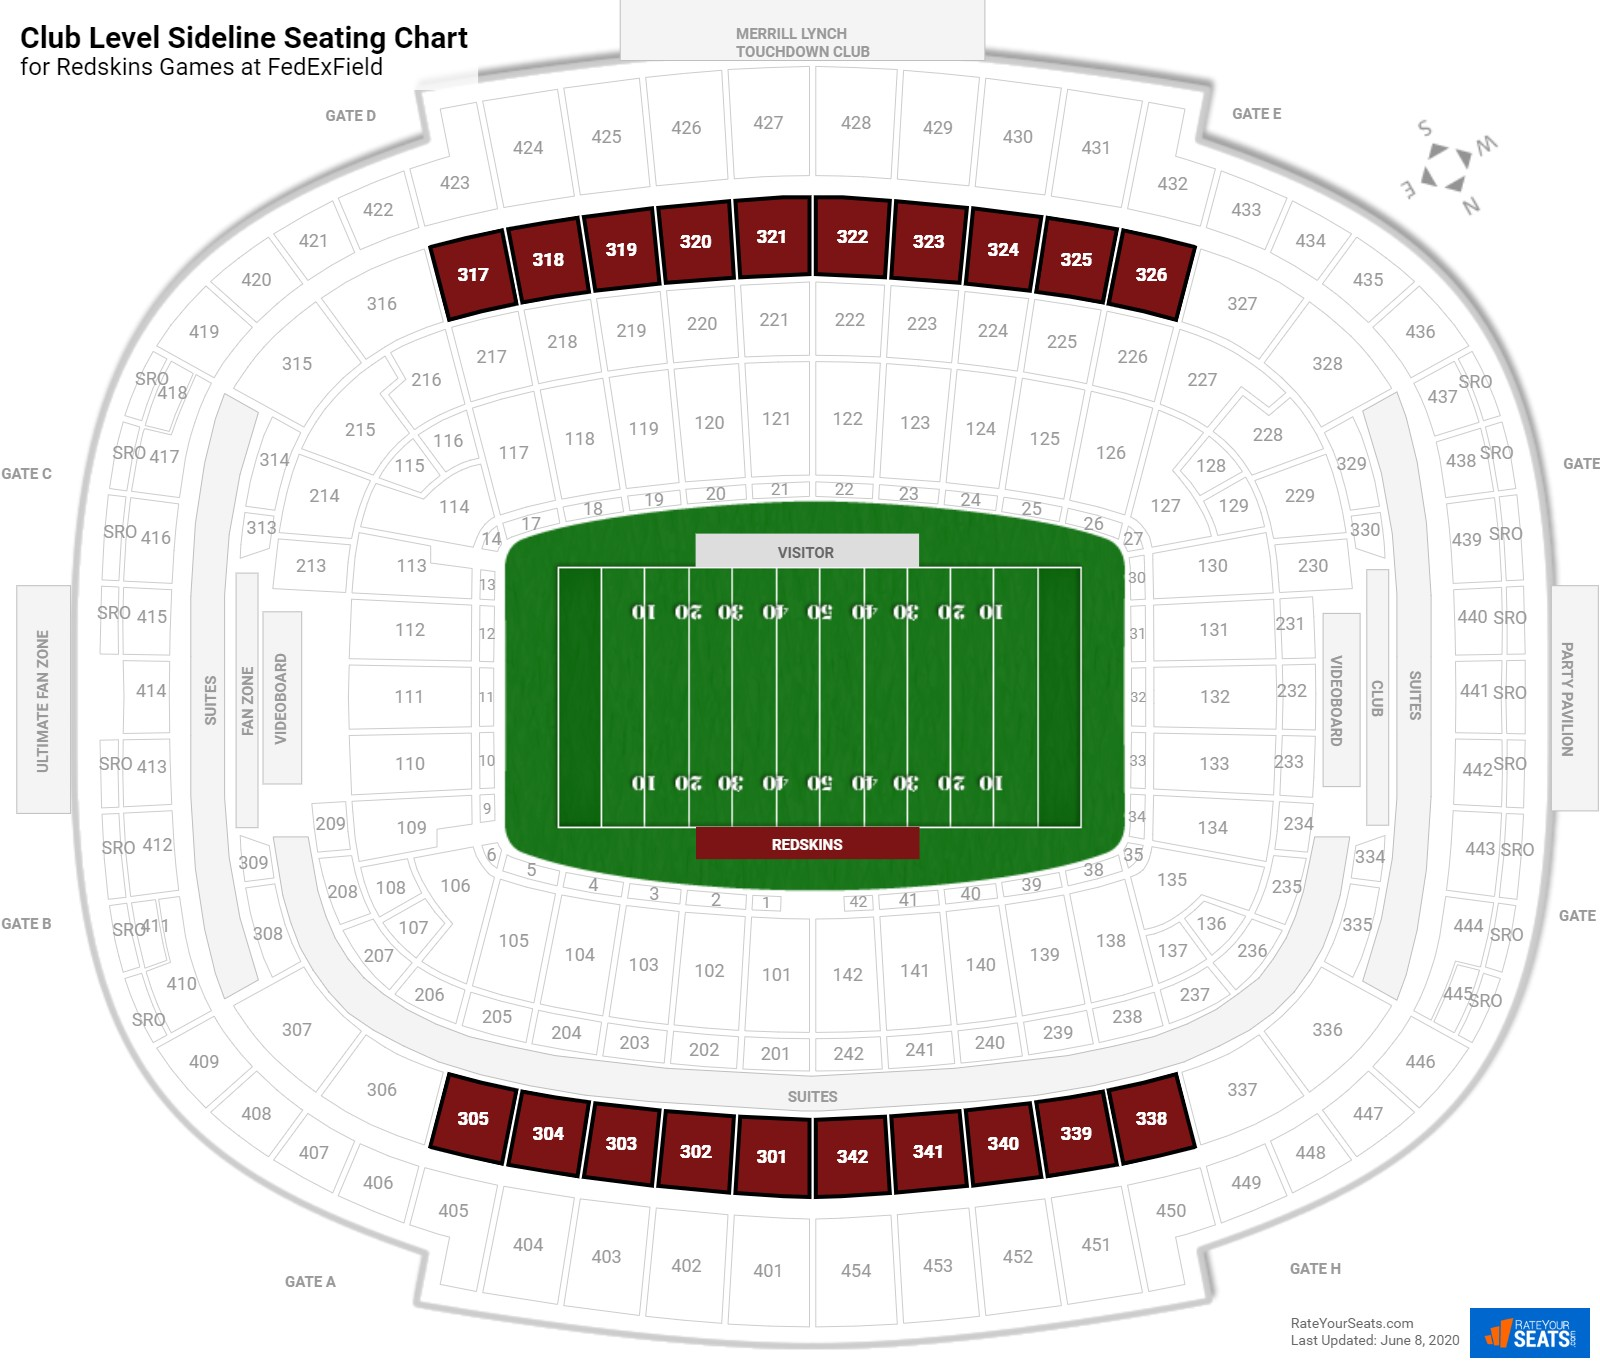 FedExField Club Level Sideline seating chart